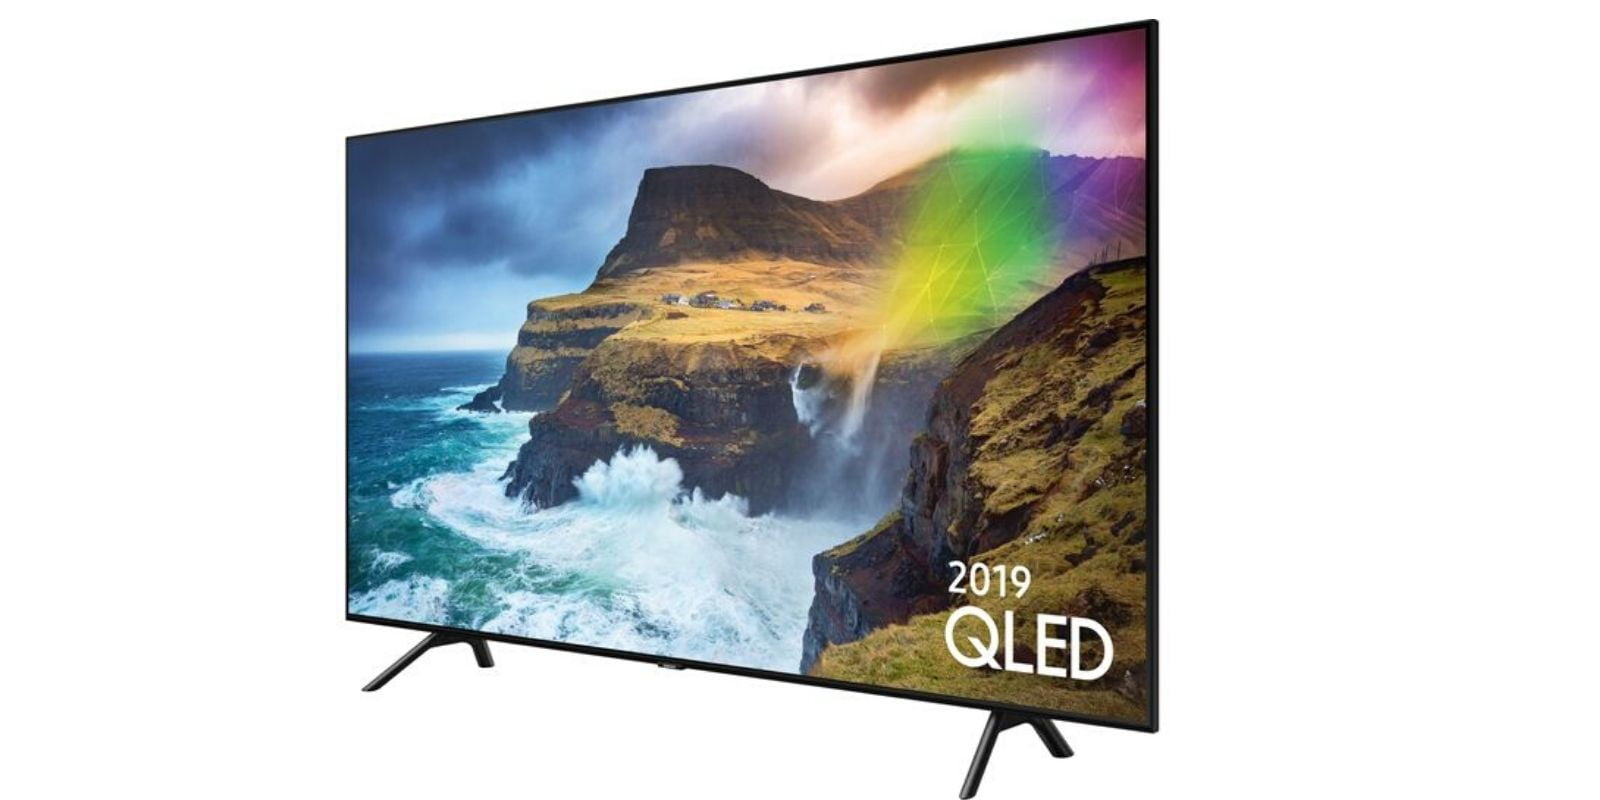 Samsung QLED TV black friday deals